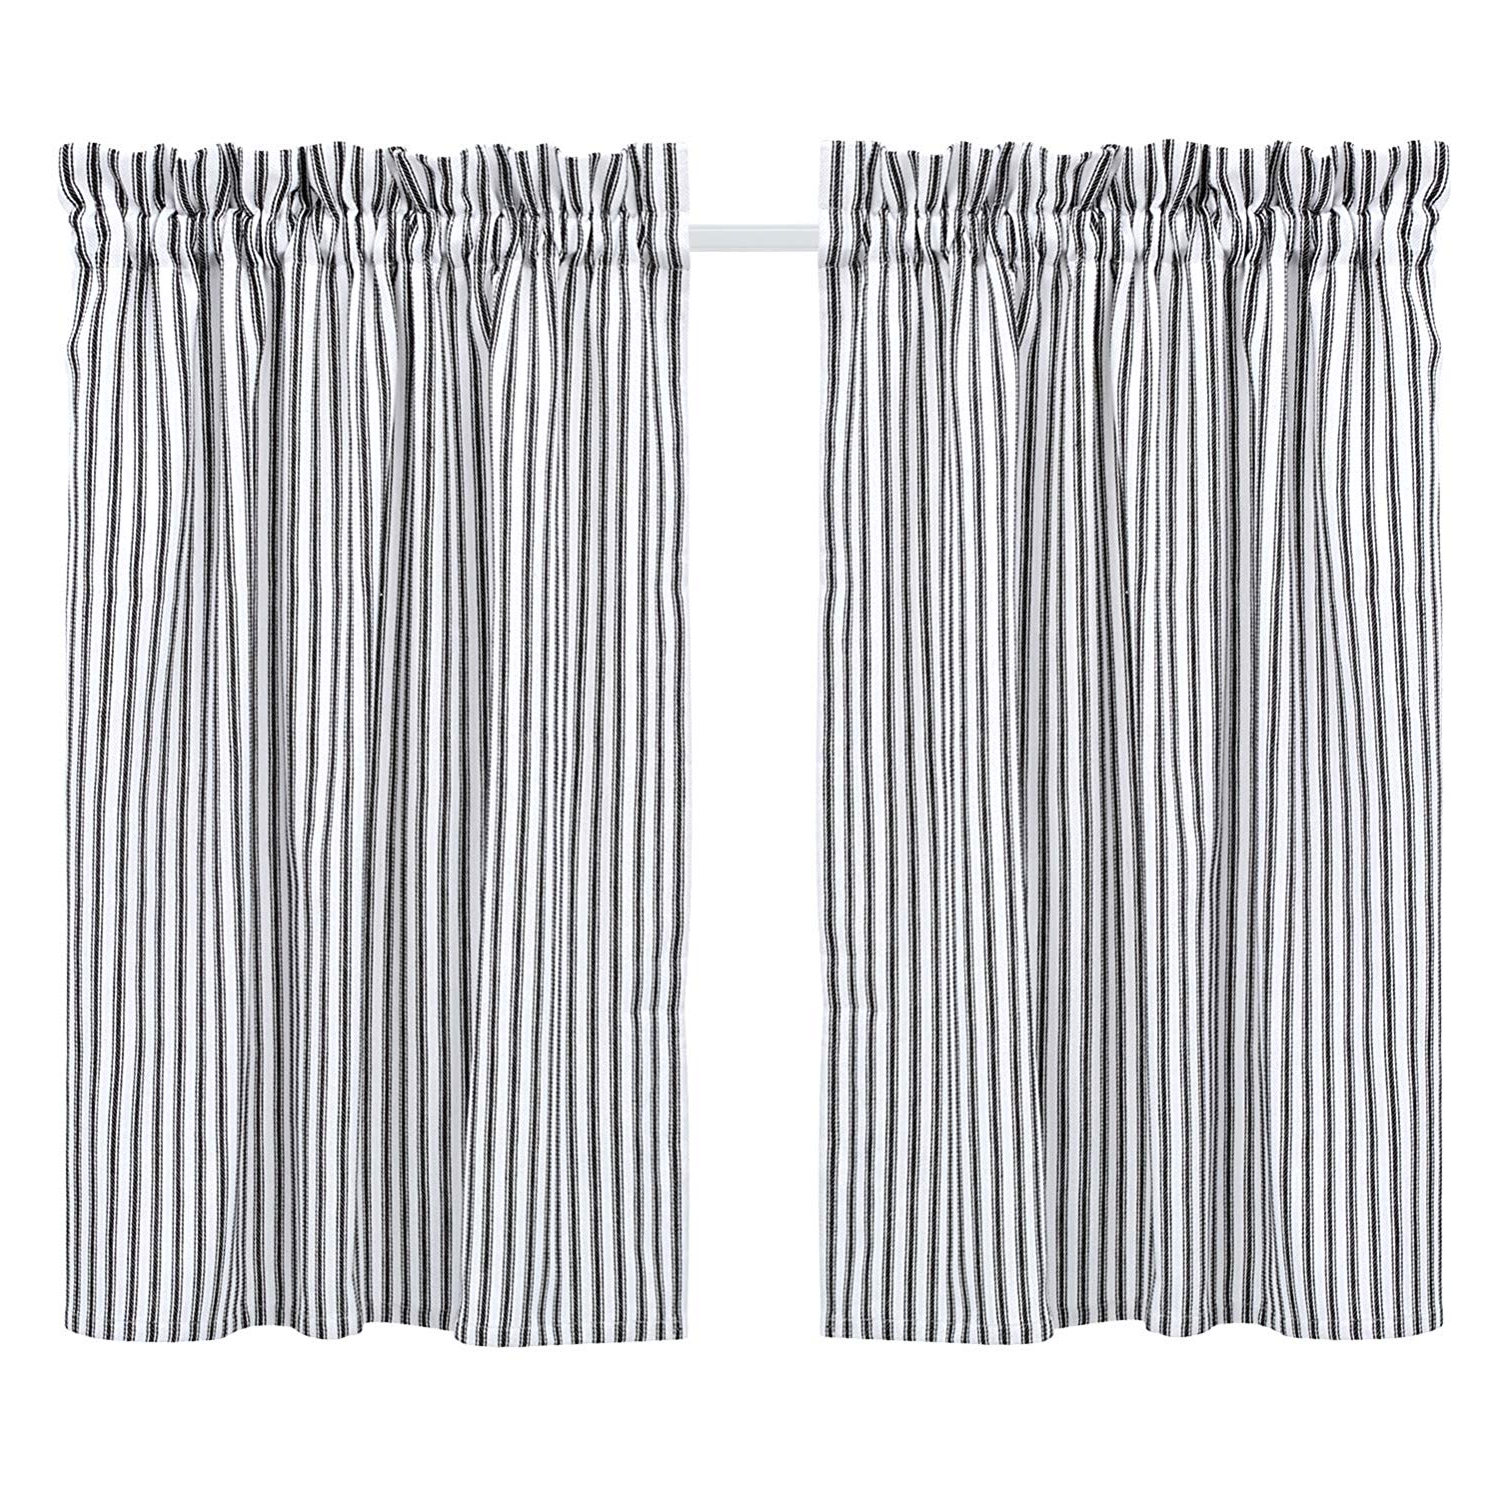 Cackleberry Home Black And White Ticking Stripe Cafe Curtains 28 Inches W X 24 Inches L Woven Cotton, Set Of 2 Within Well Known Classic Black And White Curtain Tiers (View 16 of 20)